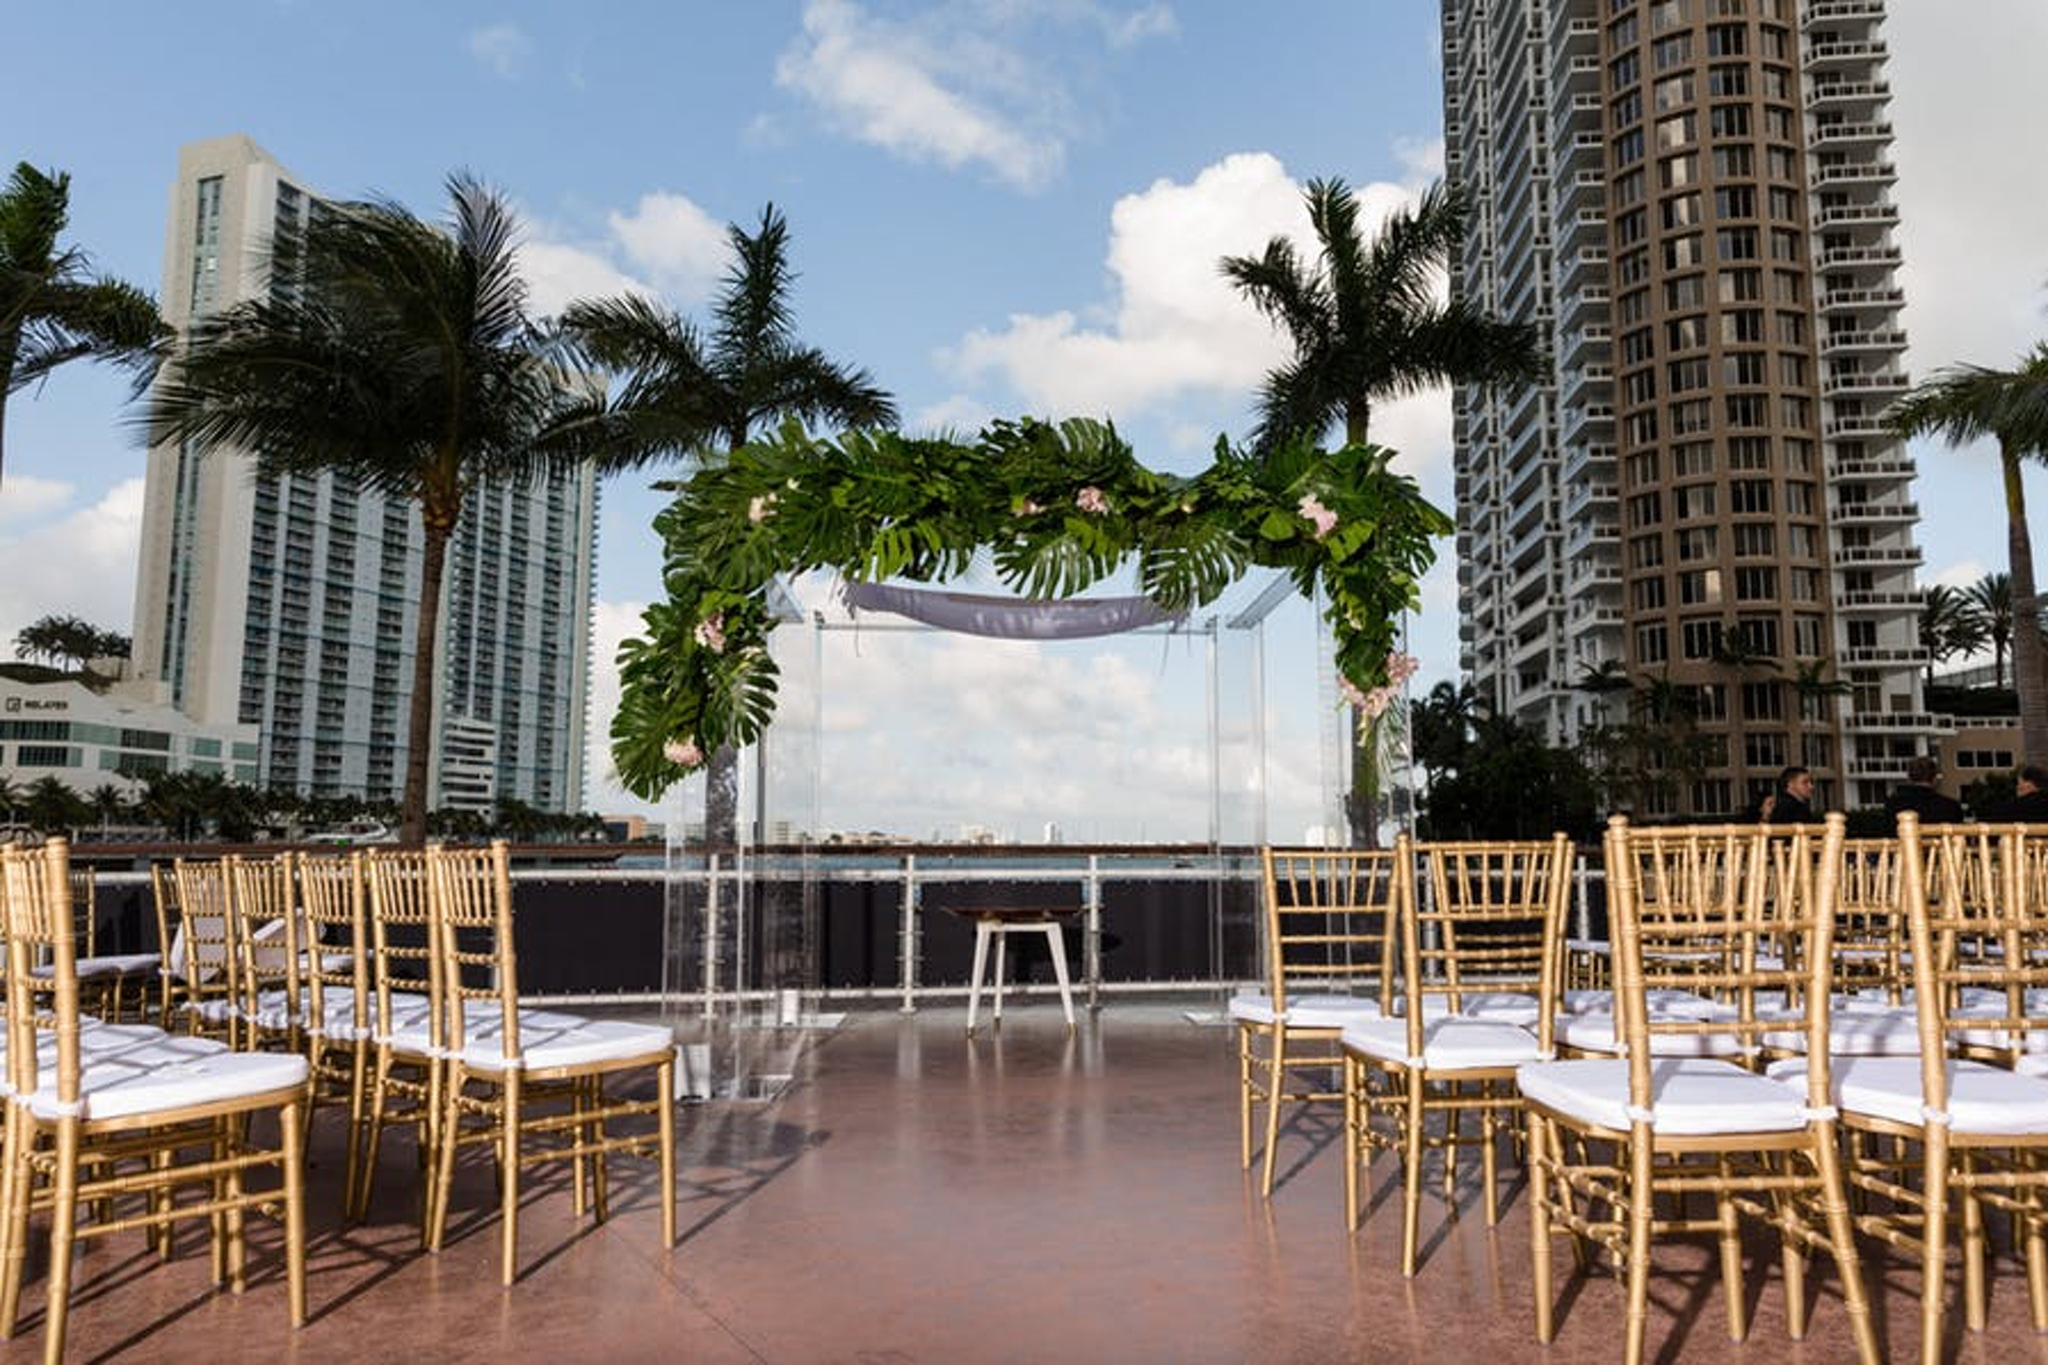 City view with palm trees at Cipriani Downtown Miami